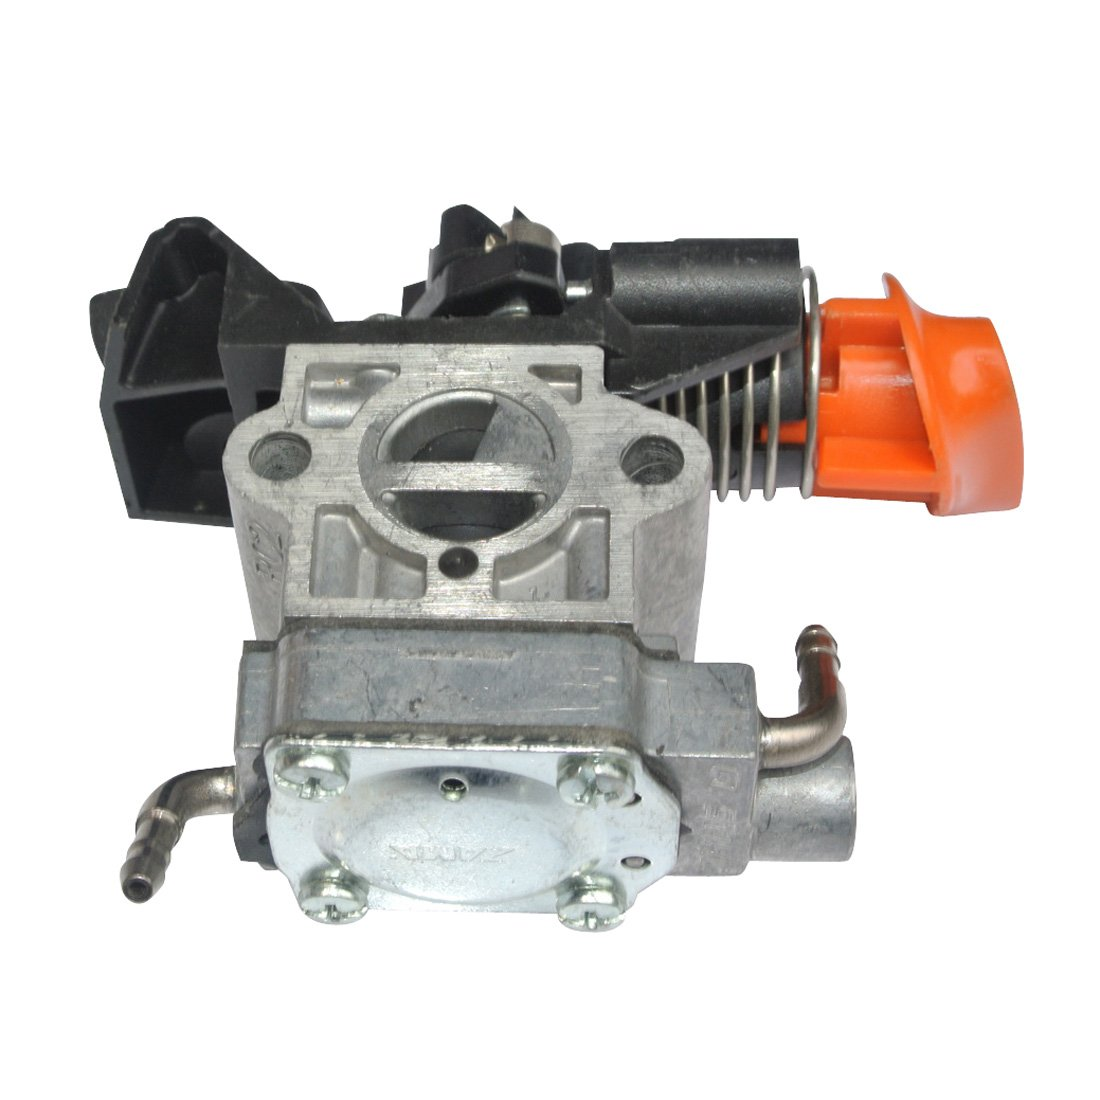 New Performance Carburetor Fits Stihl String Trimmer Cutter Repla ZAMA RC2 S243 Carb